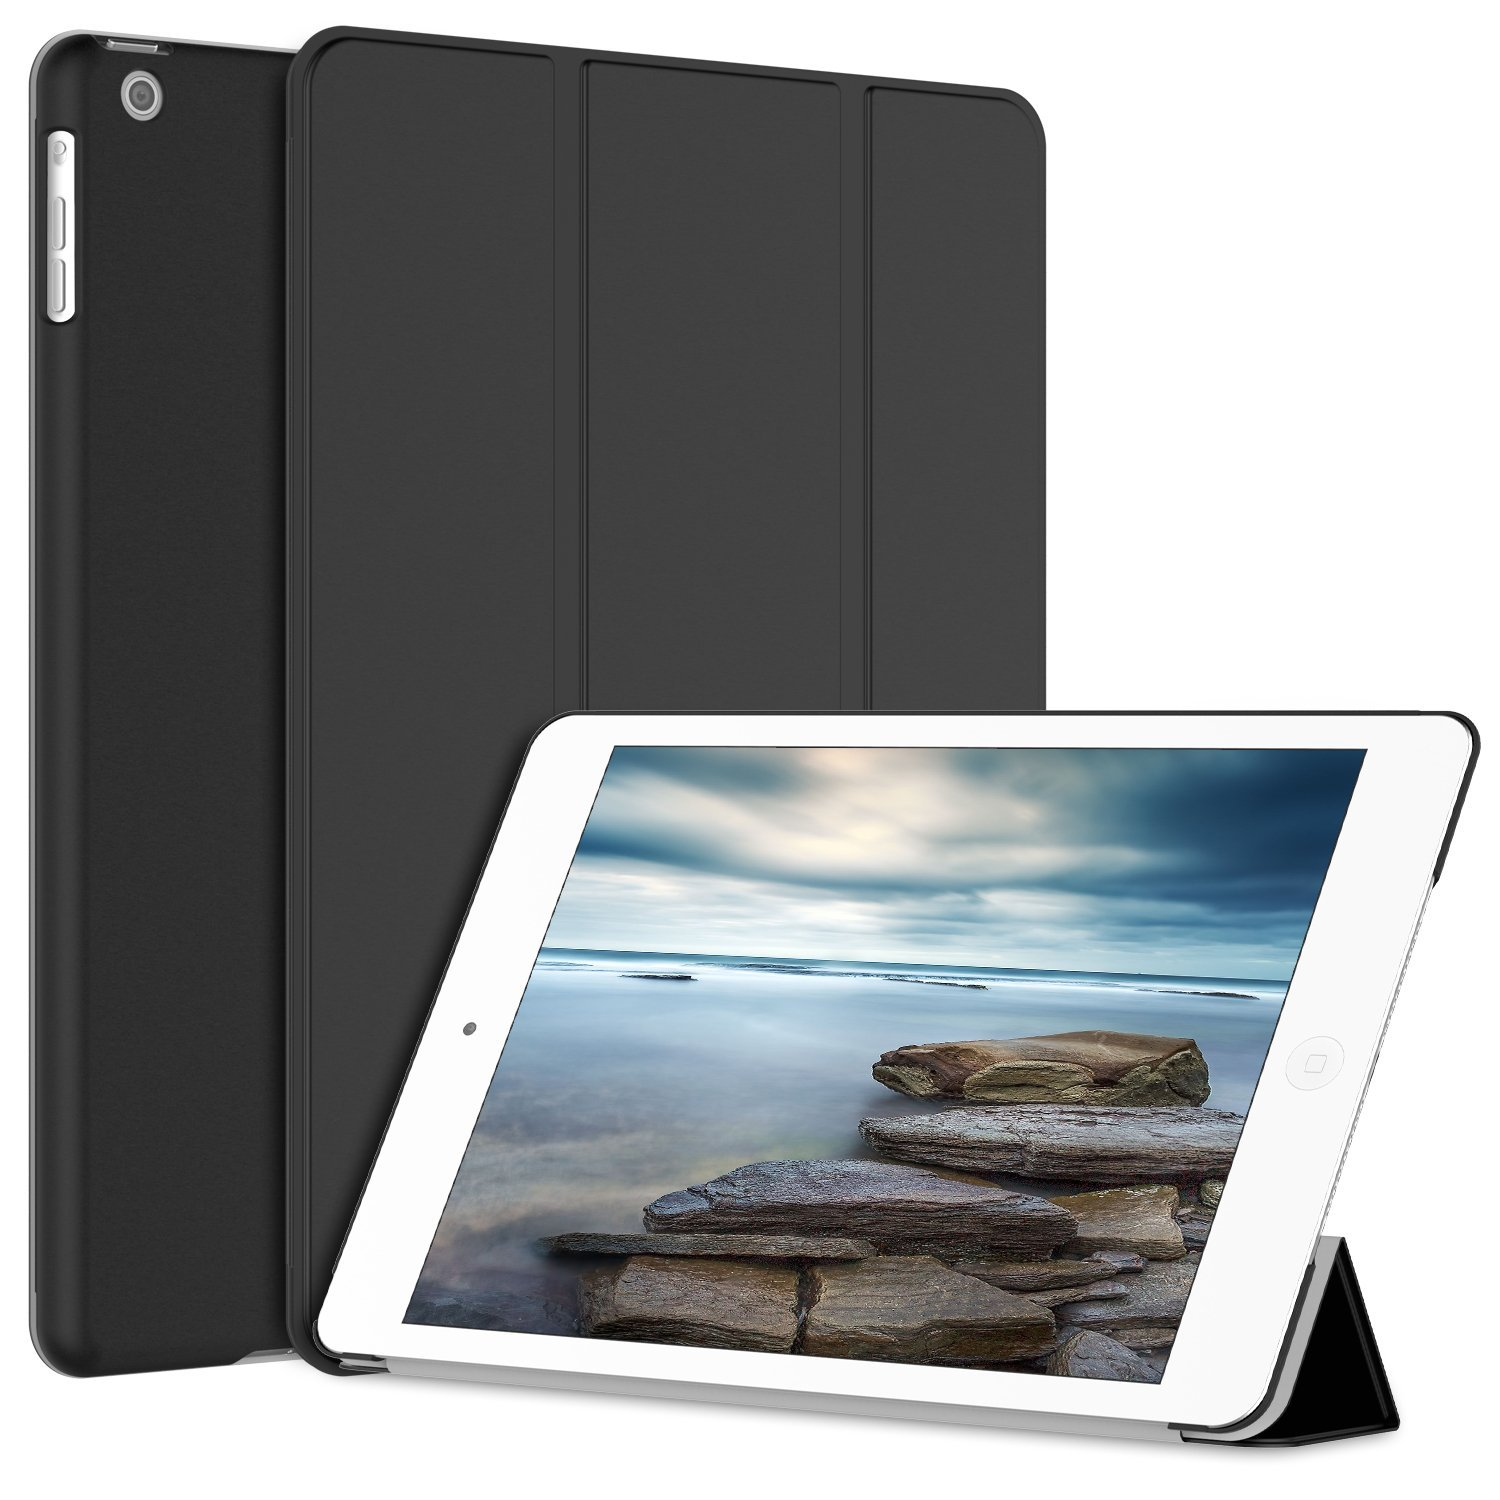 SuprJETech iPad Air Case Slim-Fit Smart Case Cover for Apple ipad air 1 with Auto Sleep/Wake Feature (Black)